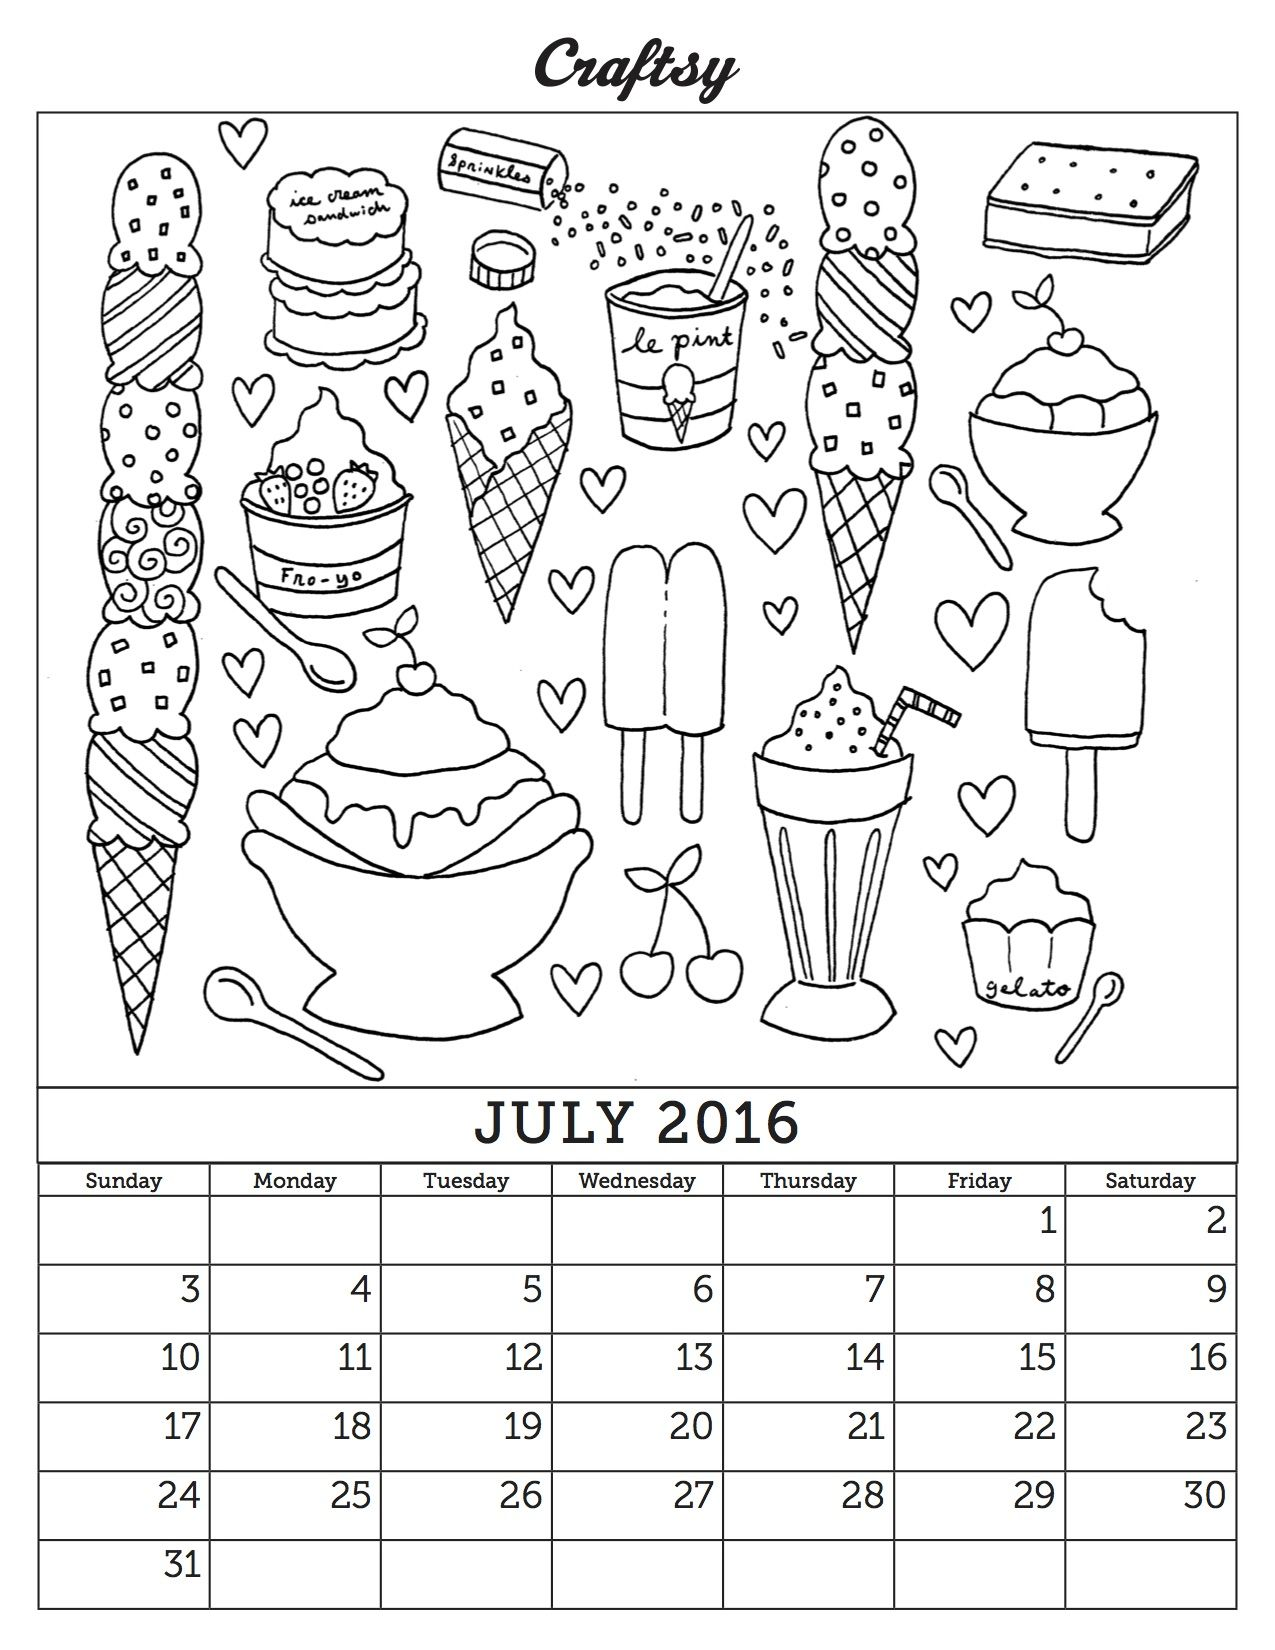 Craftsy\'s July 2016 Coloring Calendar Page - free download for ...